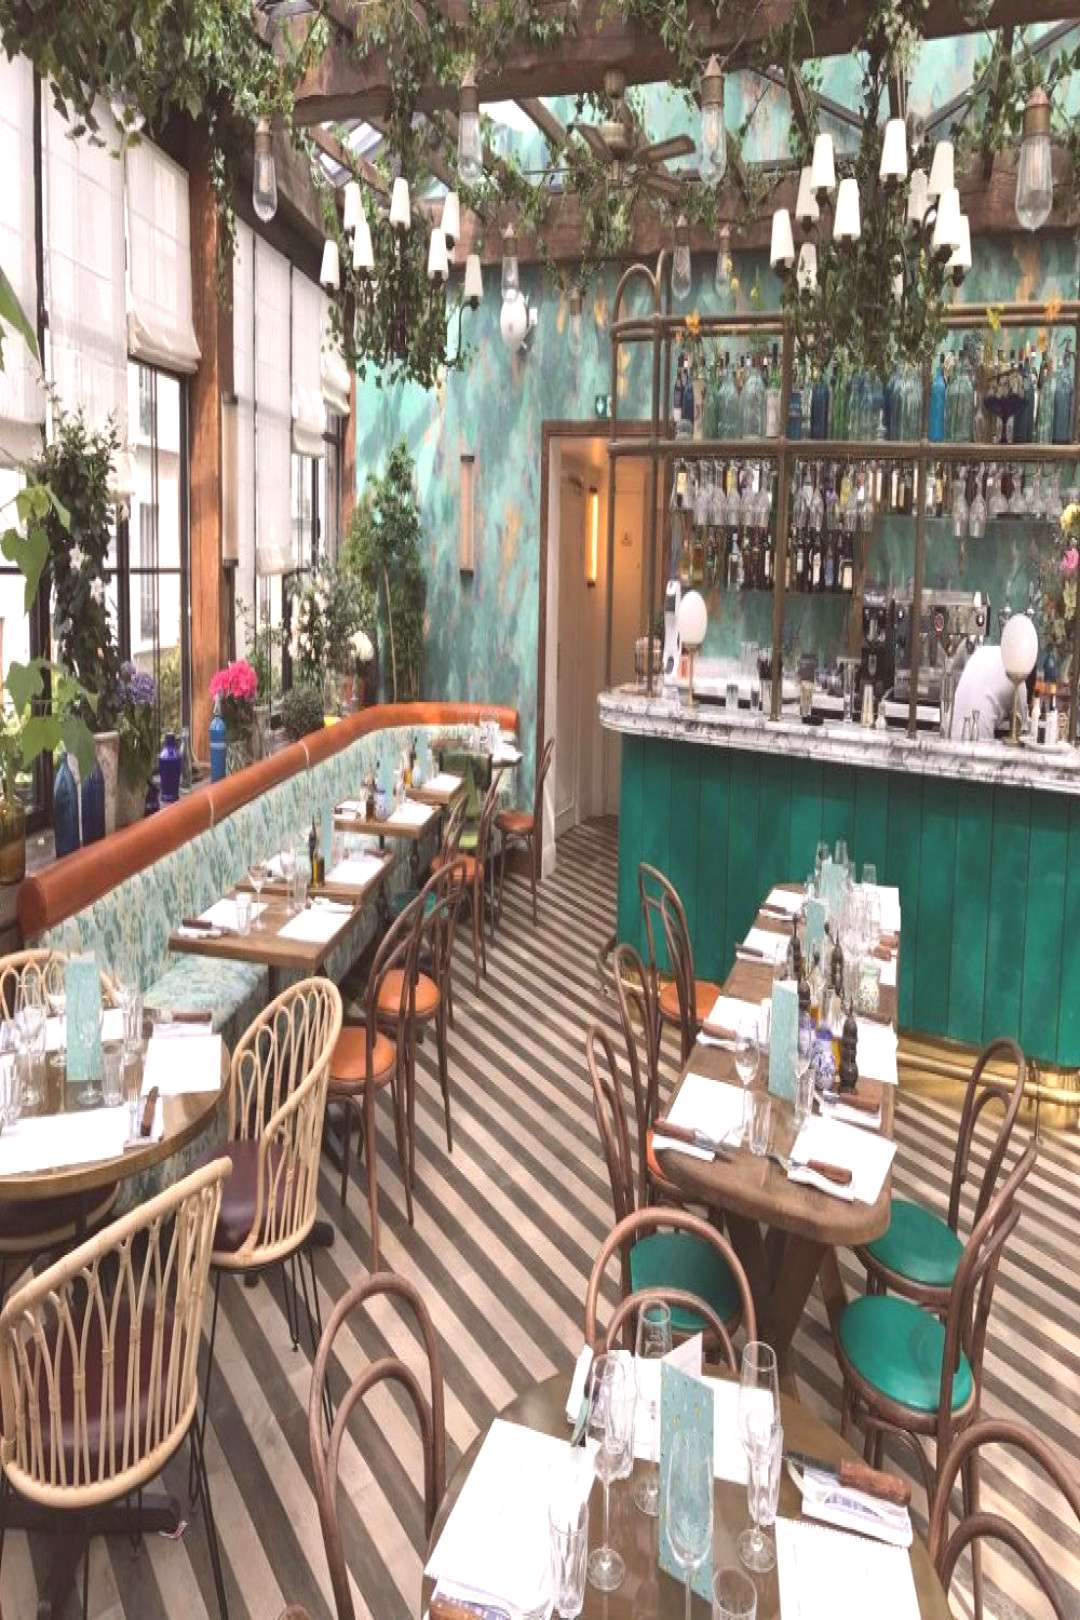 These Are The Best Restaurants in Paris According to Vogue -